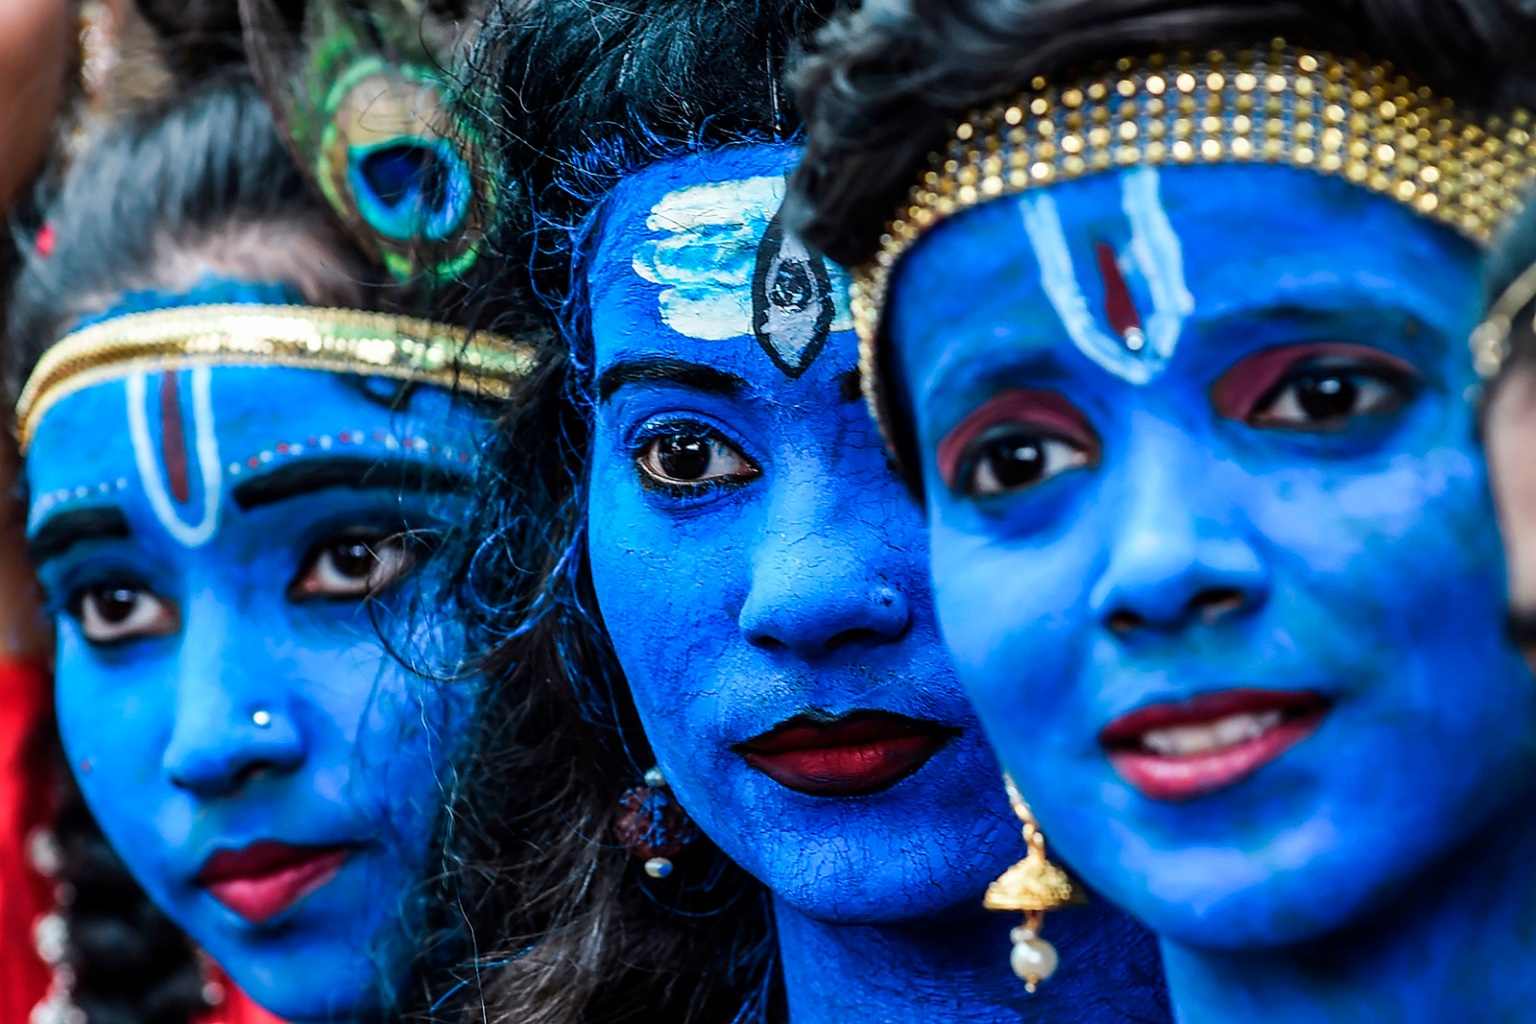 Students dressed as Hindu gods Lord Krishna and Lord Shiva participate in a cultural event at their school in Mumbai on Aug. 21. INDRANIL MUKHERJEE/AFP/Getty Images